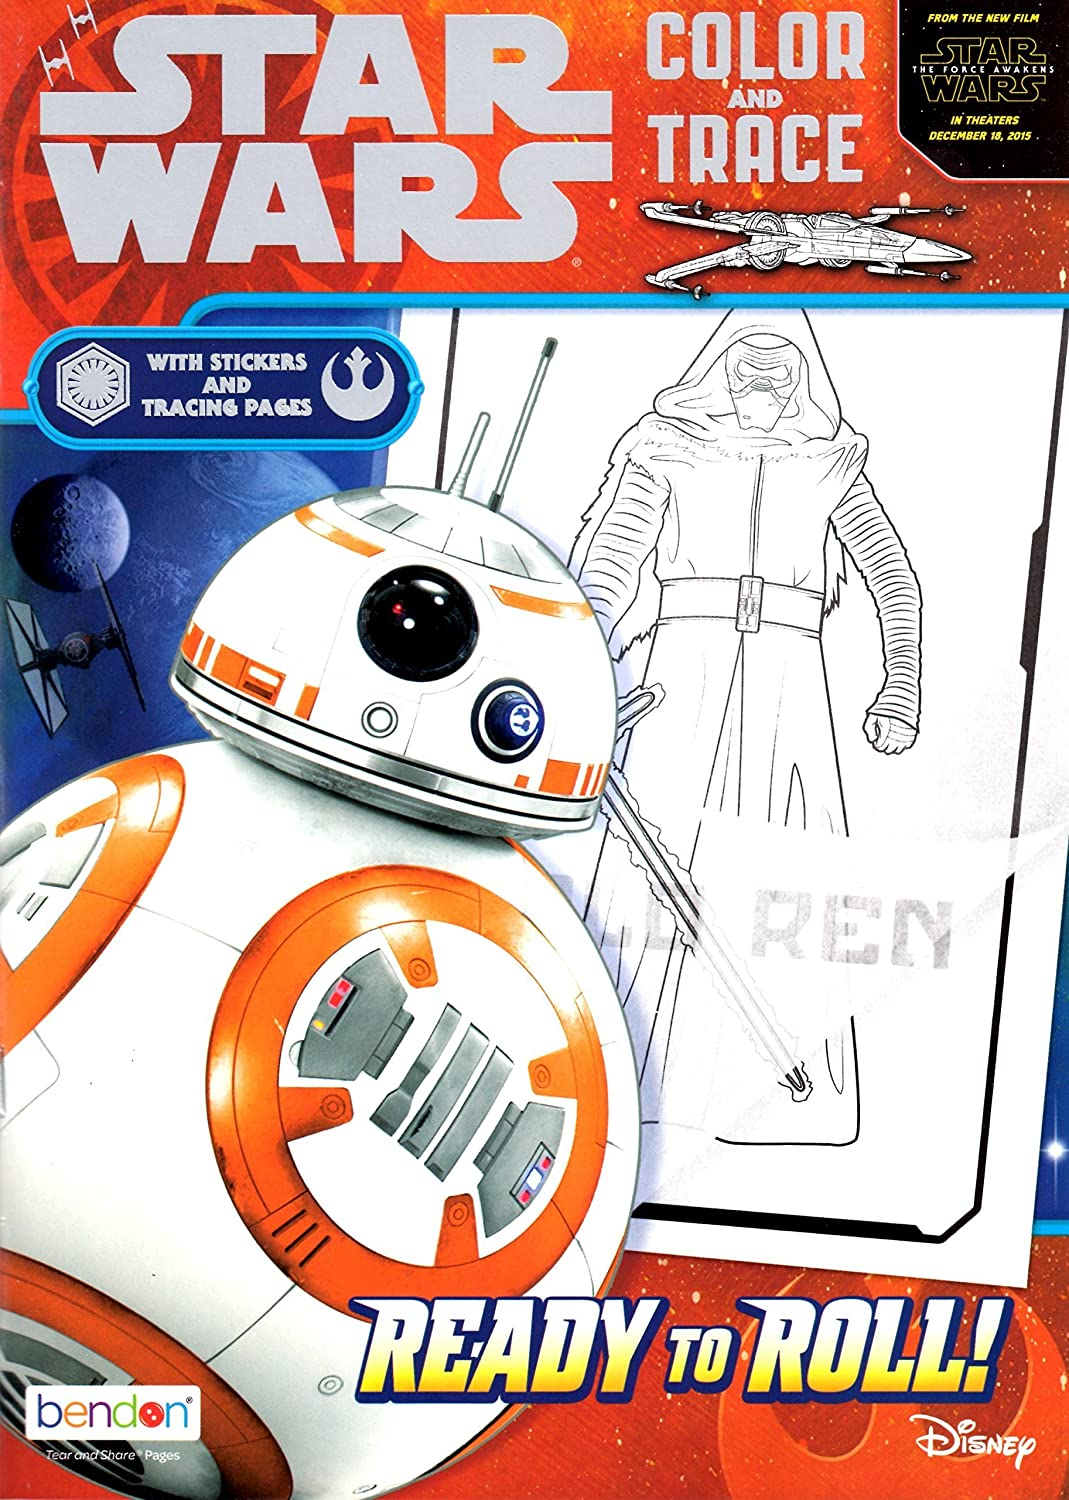 Set of 2 Star Wars Ultimate Paint Box /& Color and Trace Activity Book Rule The Galaxy 92 Total Pages W//34 Stickers and 16 Water Color Paints